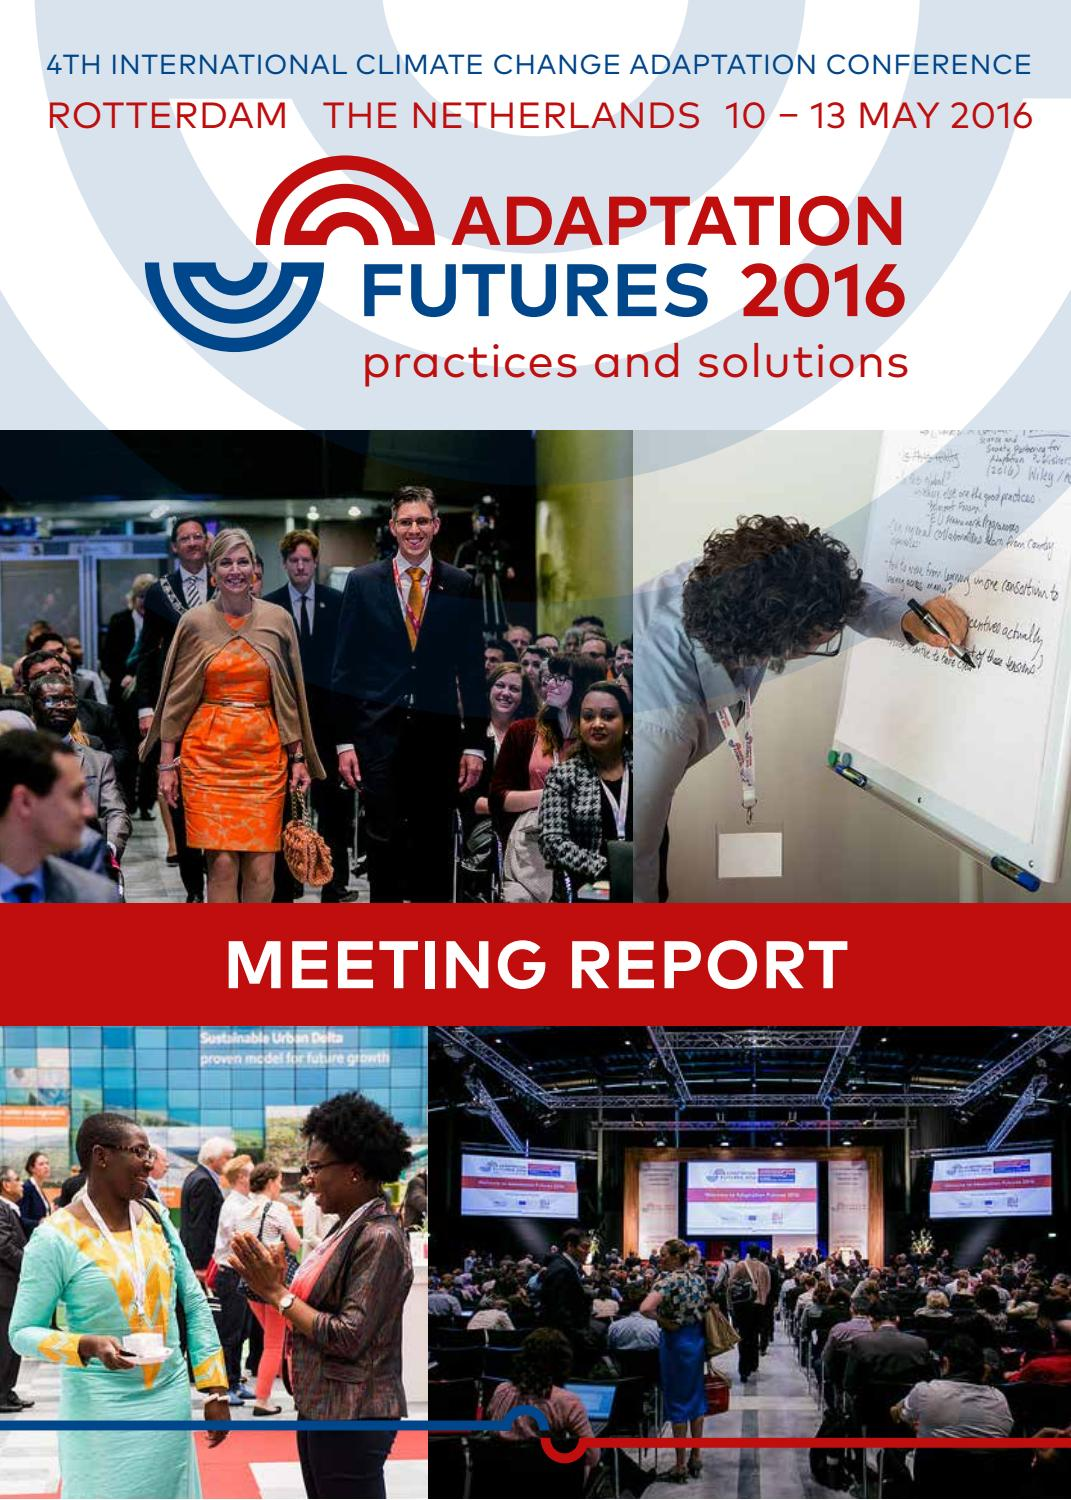 Adaptation futures 2016 practices and solutions by